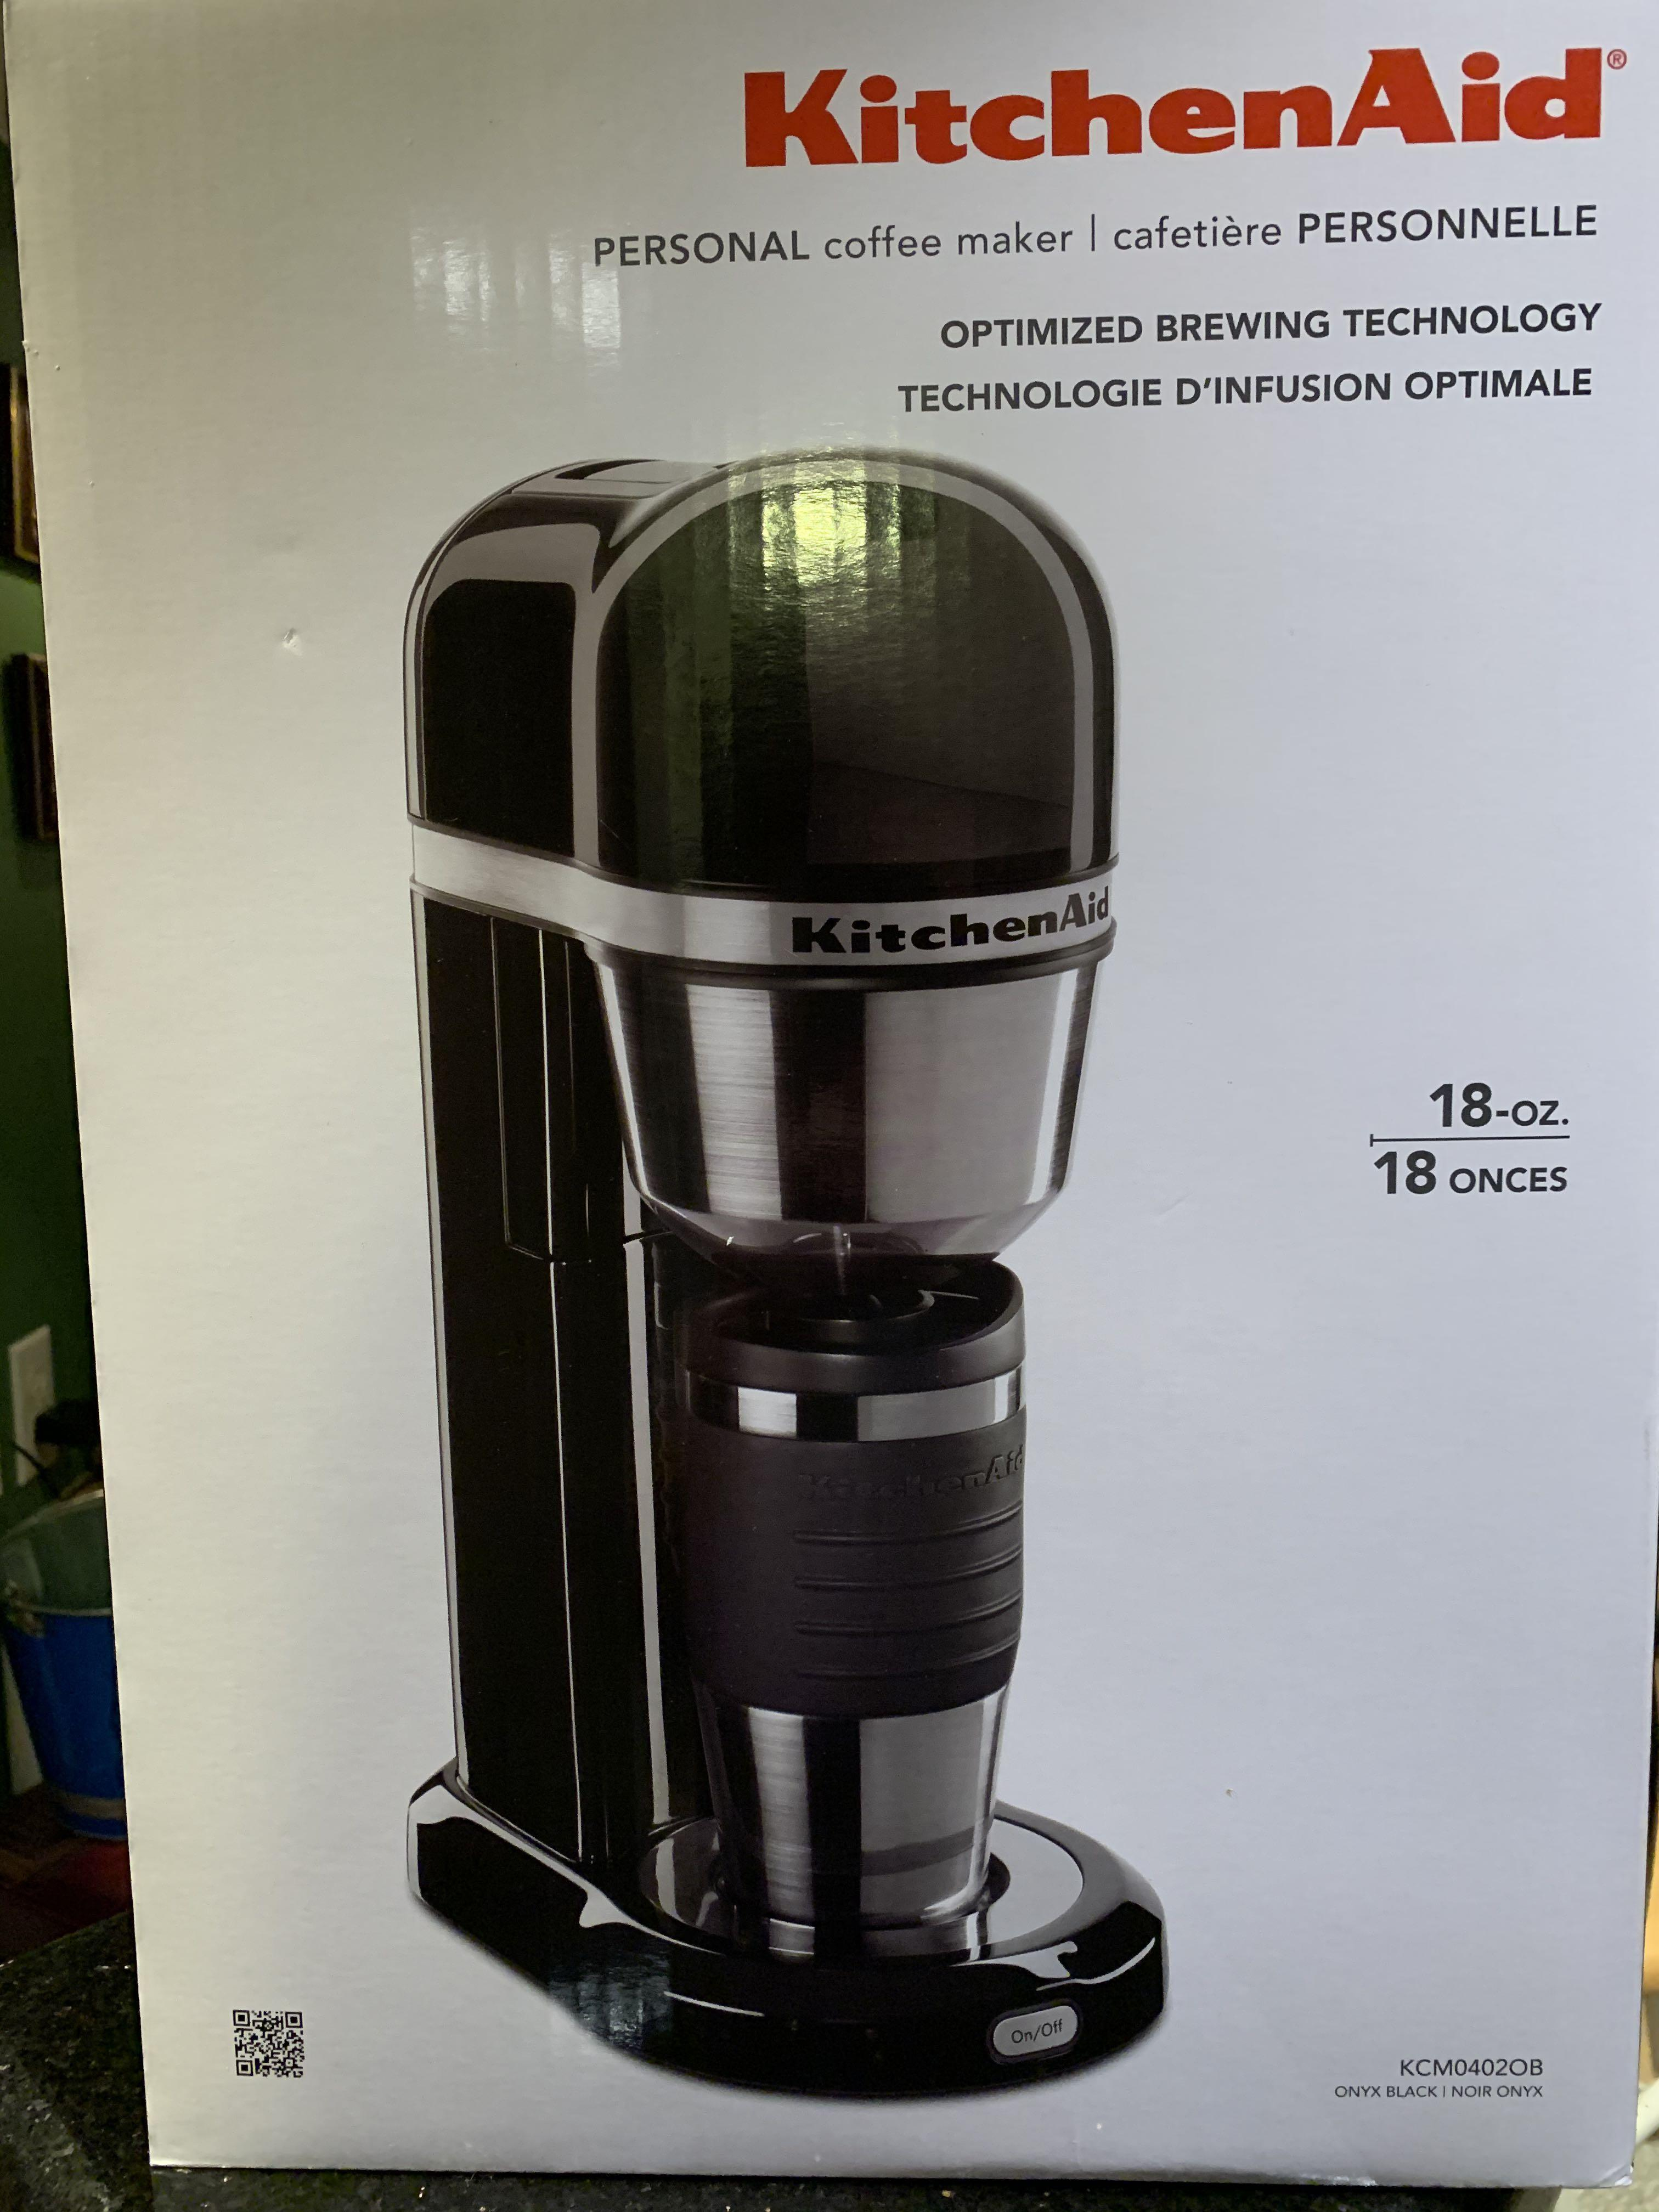 Kitchen Aid Personal coffee maker